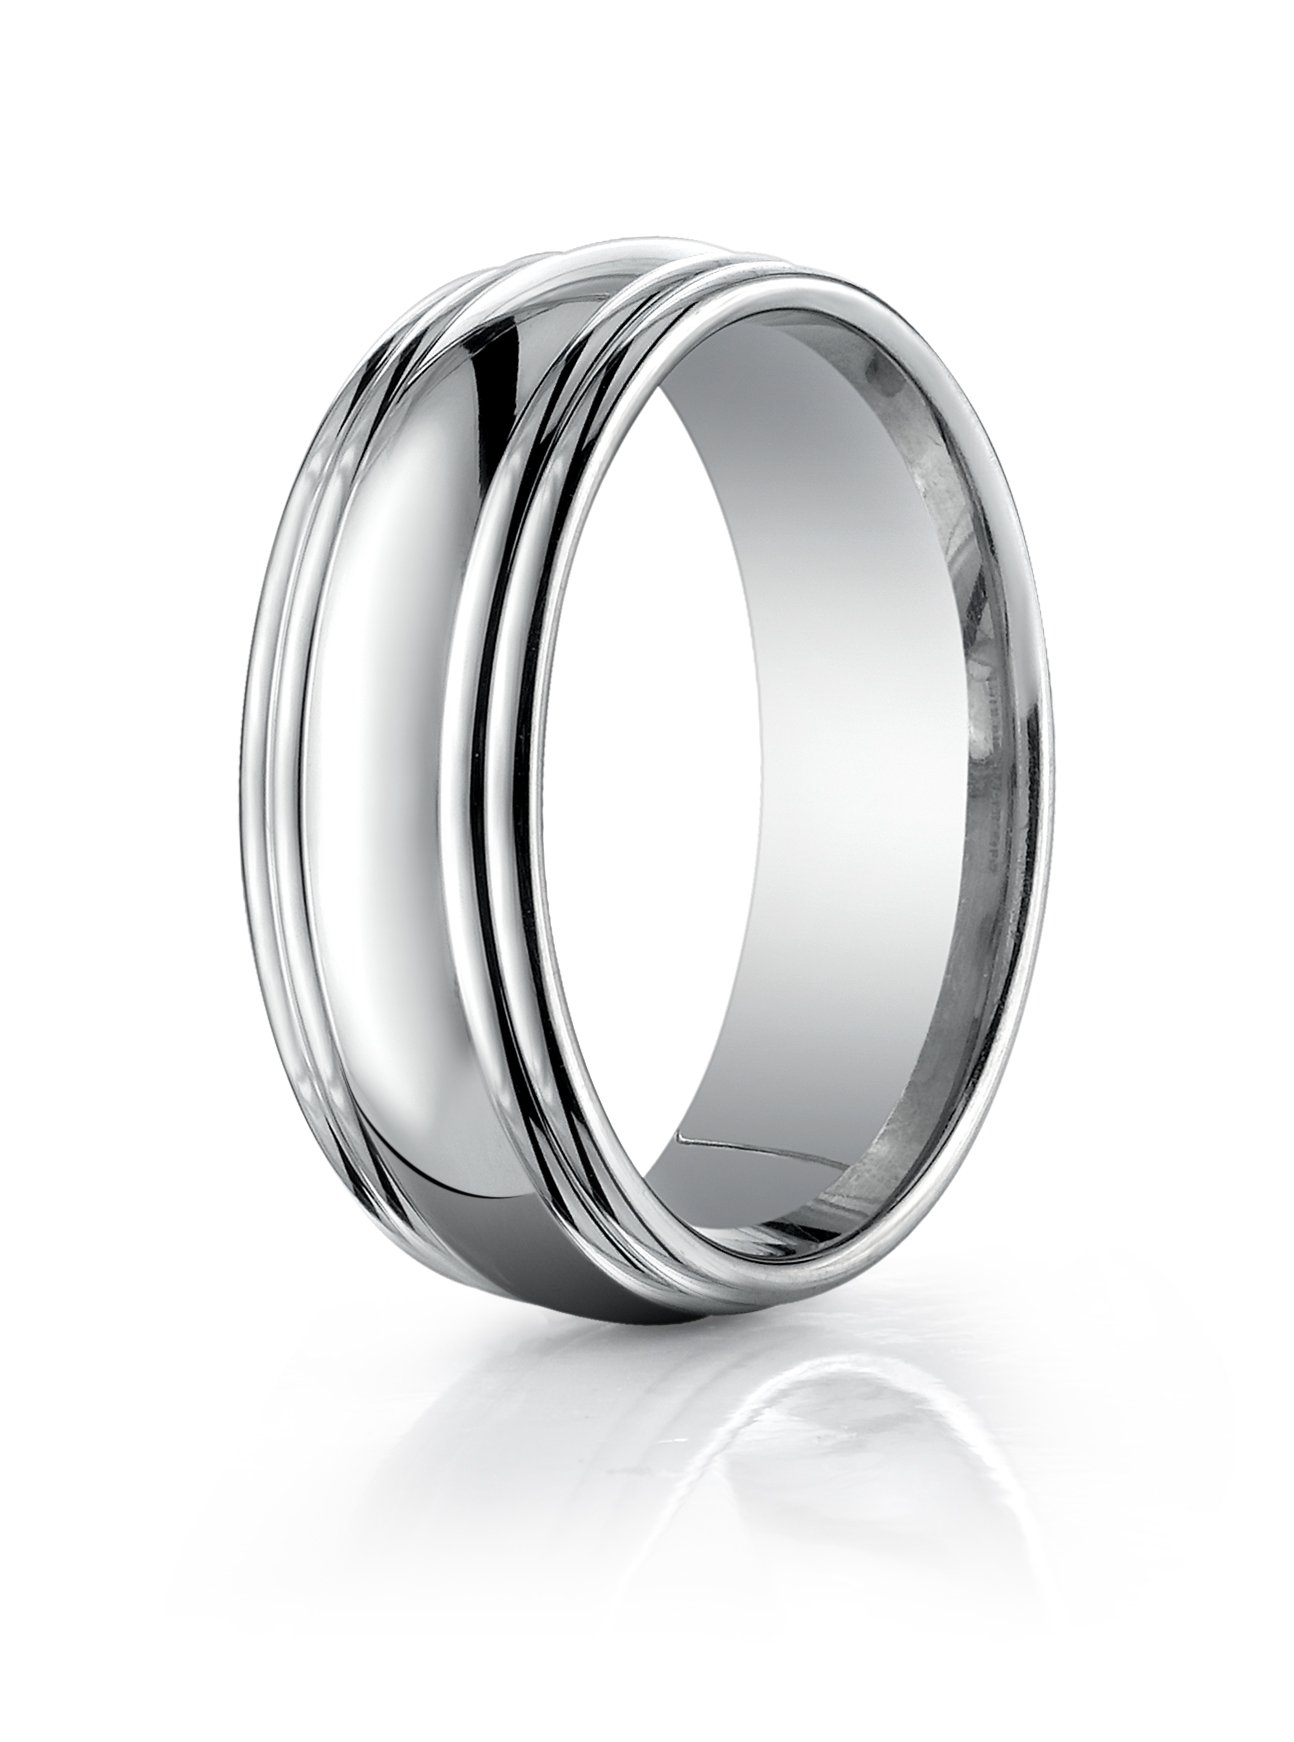 Womens 14K White Gold, 7.5mm Comfort-Fit Polished Double Round Edge Band (sz 5)